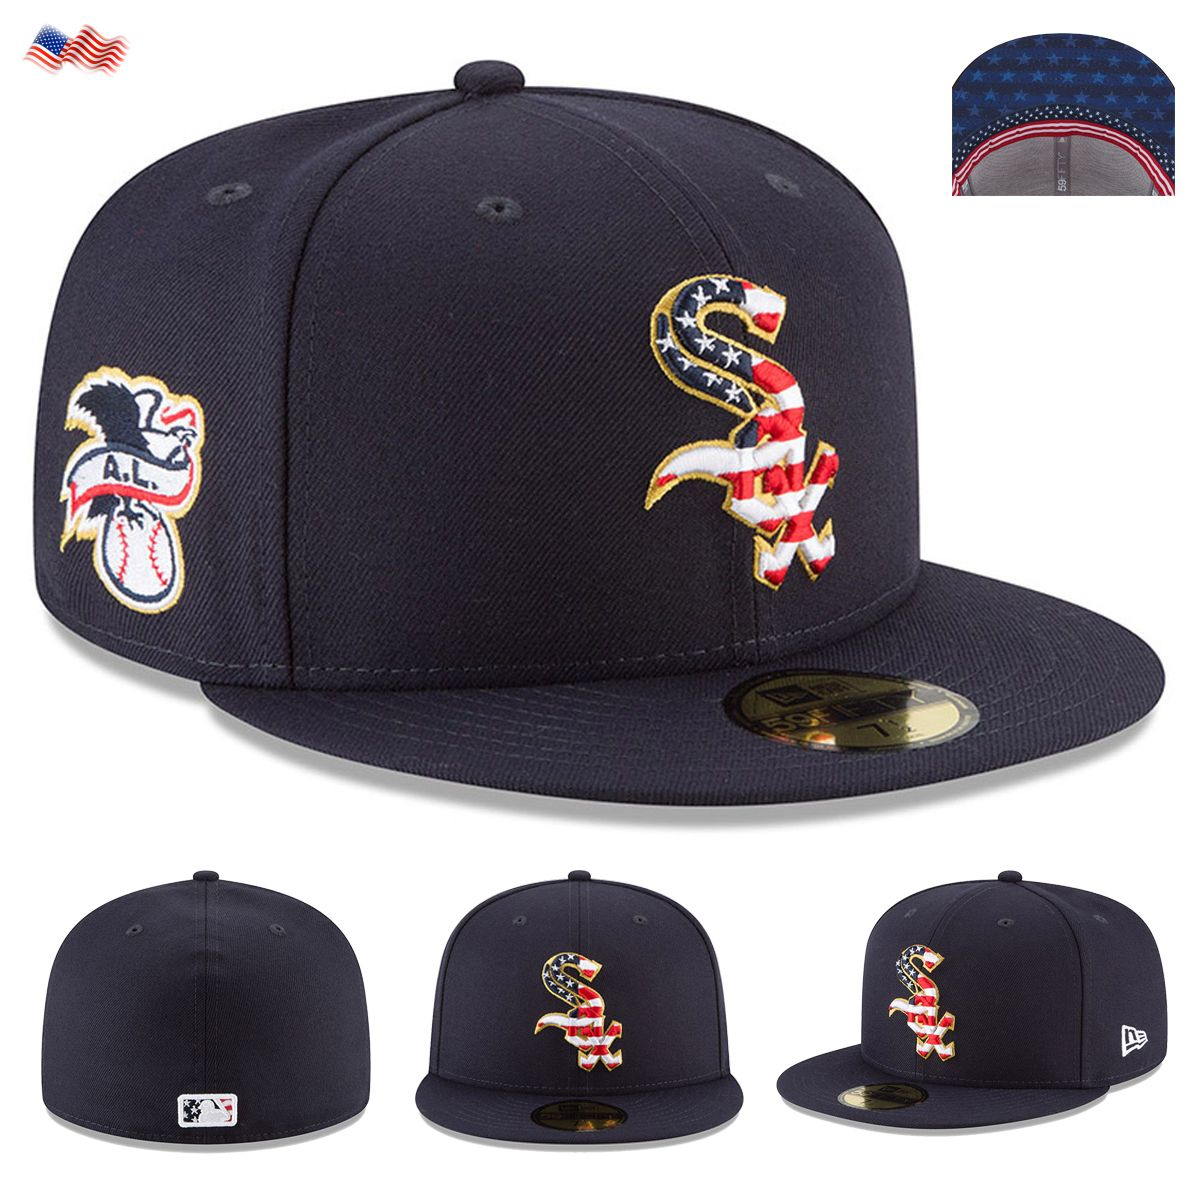 98f7cdebfb7e37 Celebrate the 4th of July 2018 holiday in style when you grab this Stars &  Stripes Chicago White Sox On-Field 59FIFTY Fitted Hat from New Era.